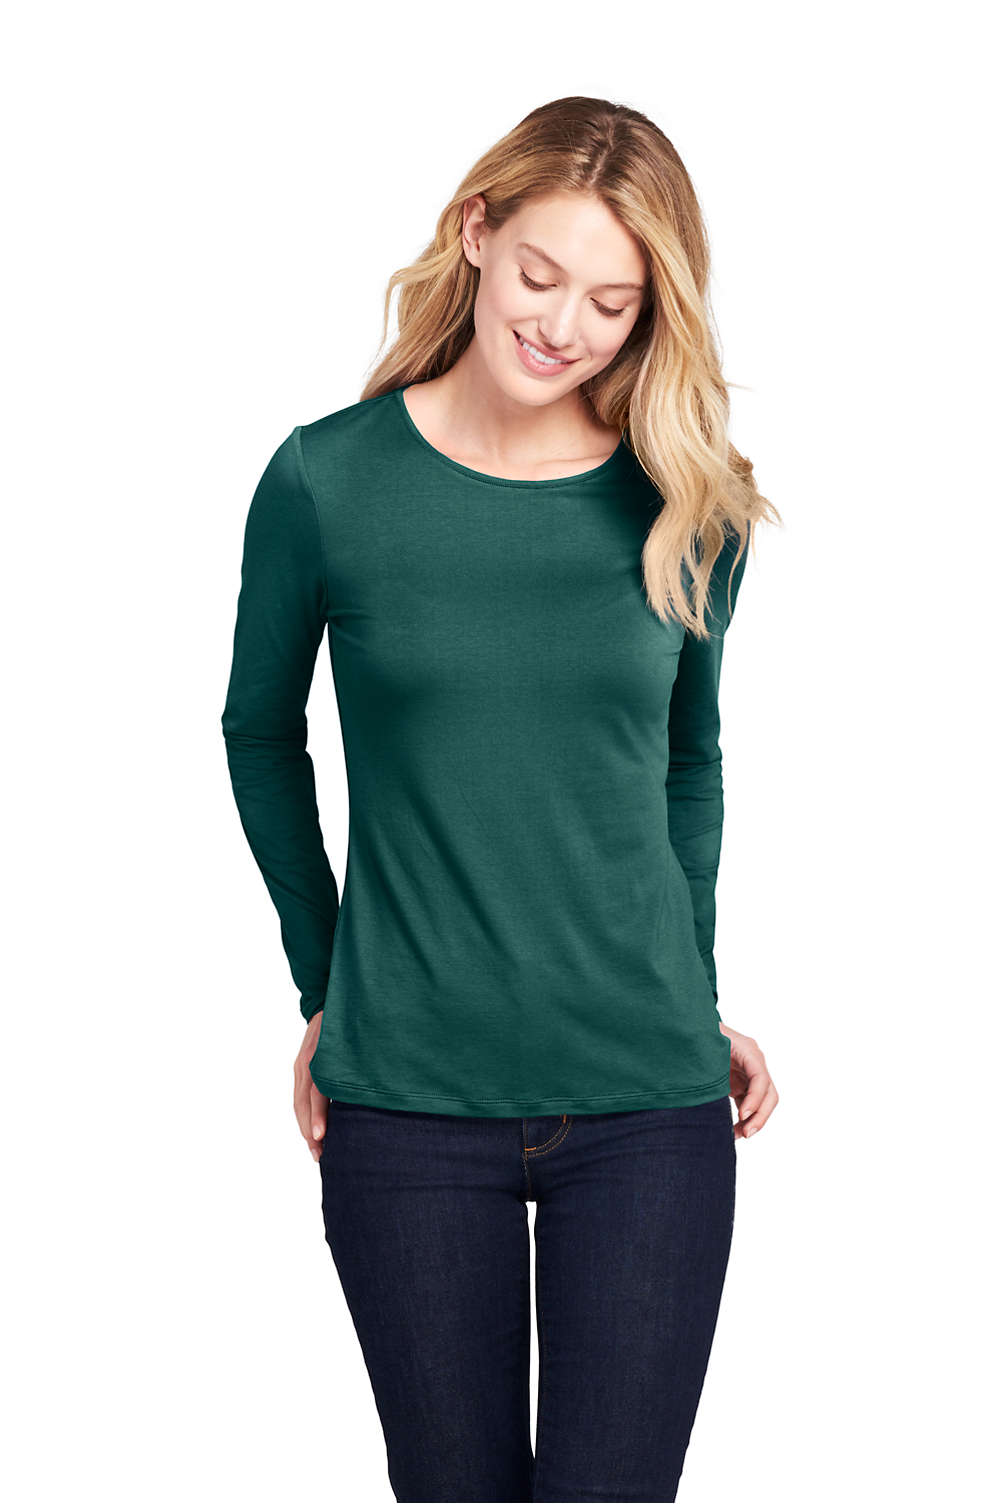 7bd8ef86bcd9 Women's Lightweight Fitted Long Sleeve T-Shirt - Shaped Layering Crewneck  from Lands' End